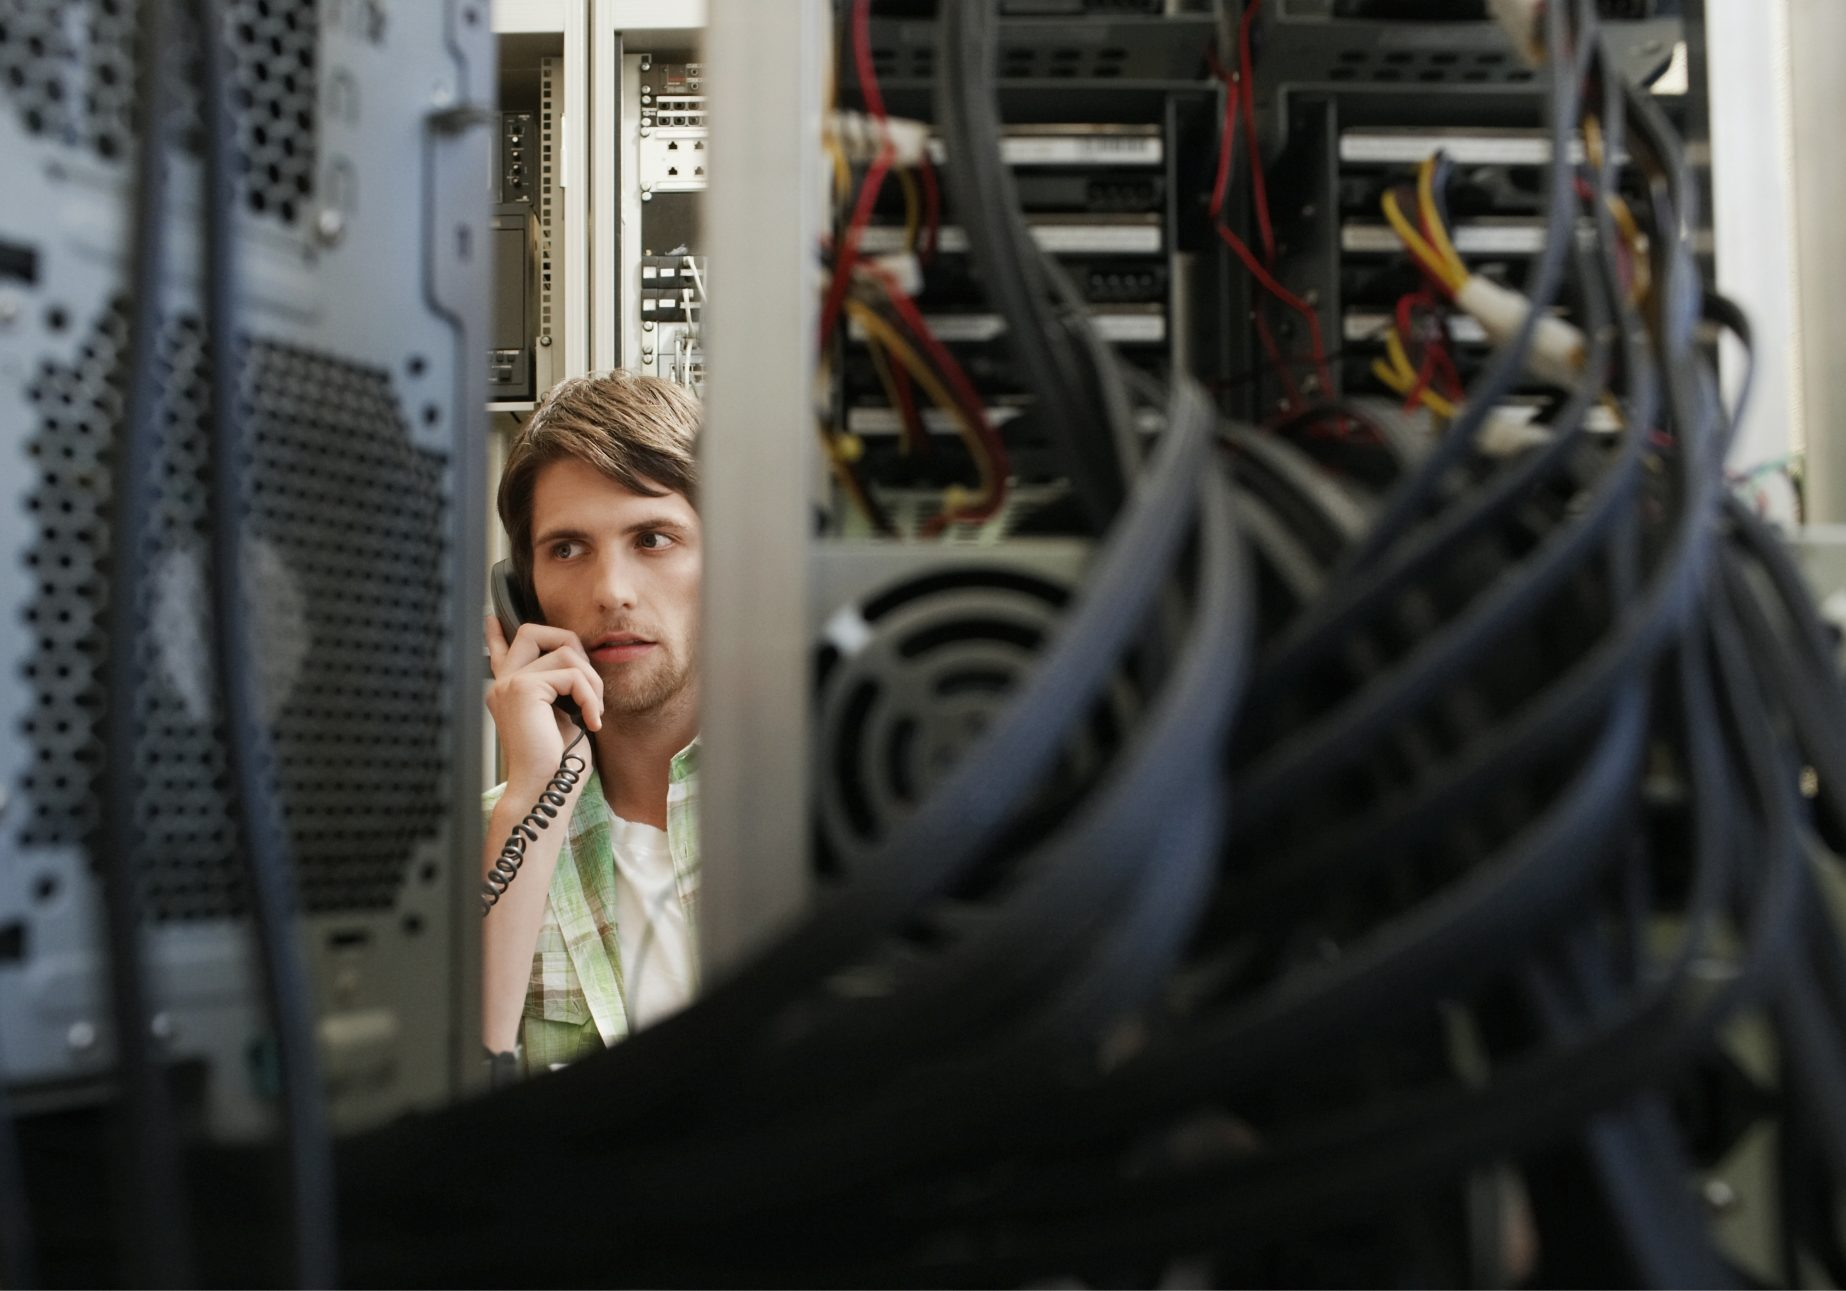 man looking at IT Servers and making a call